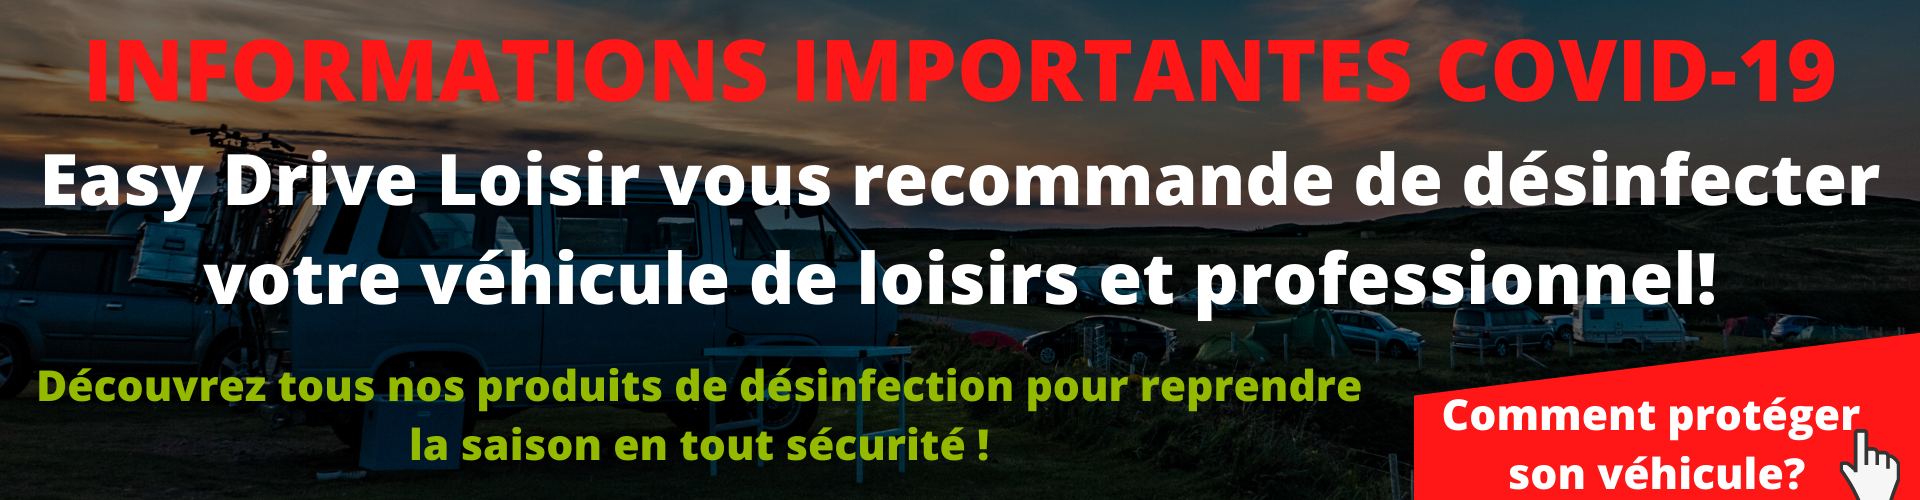 INFORMATIONS COVID-19 (2)